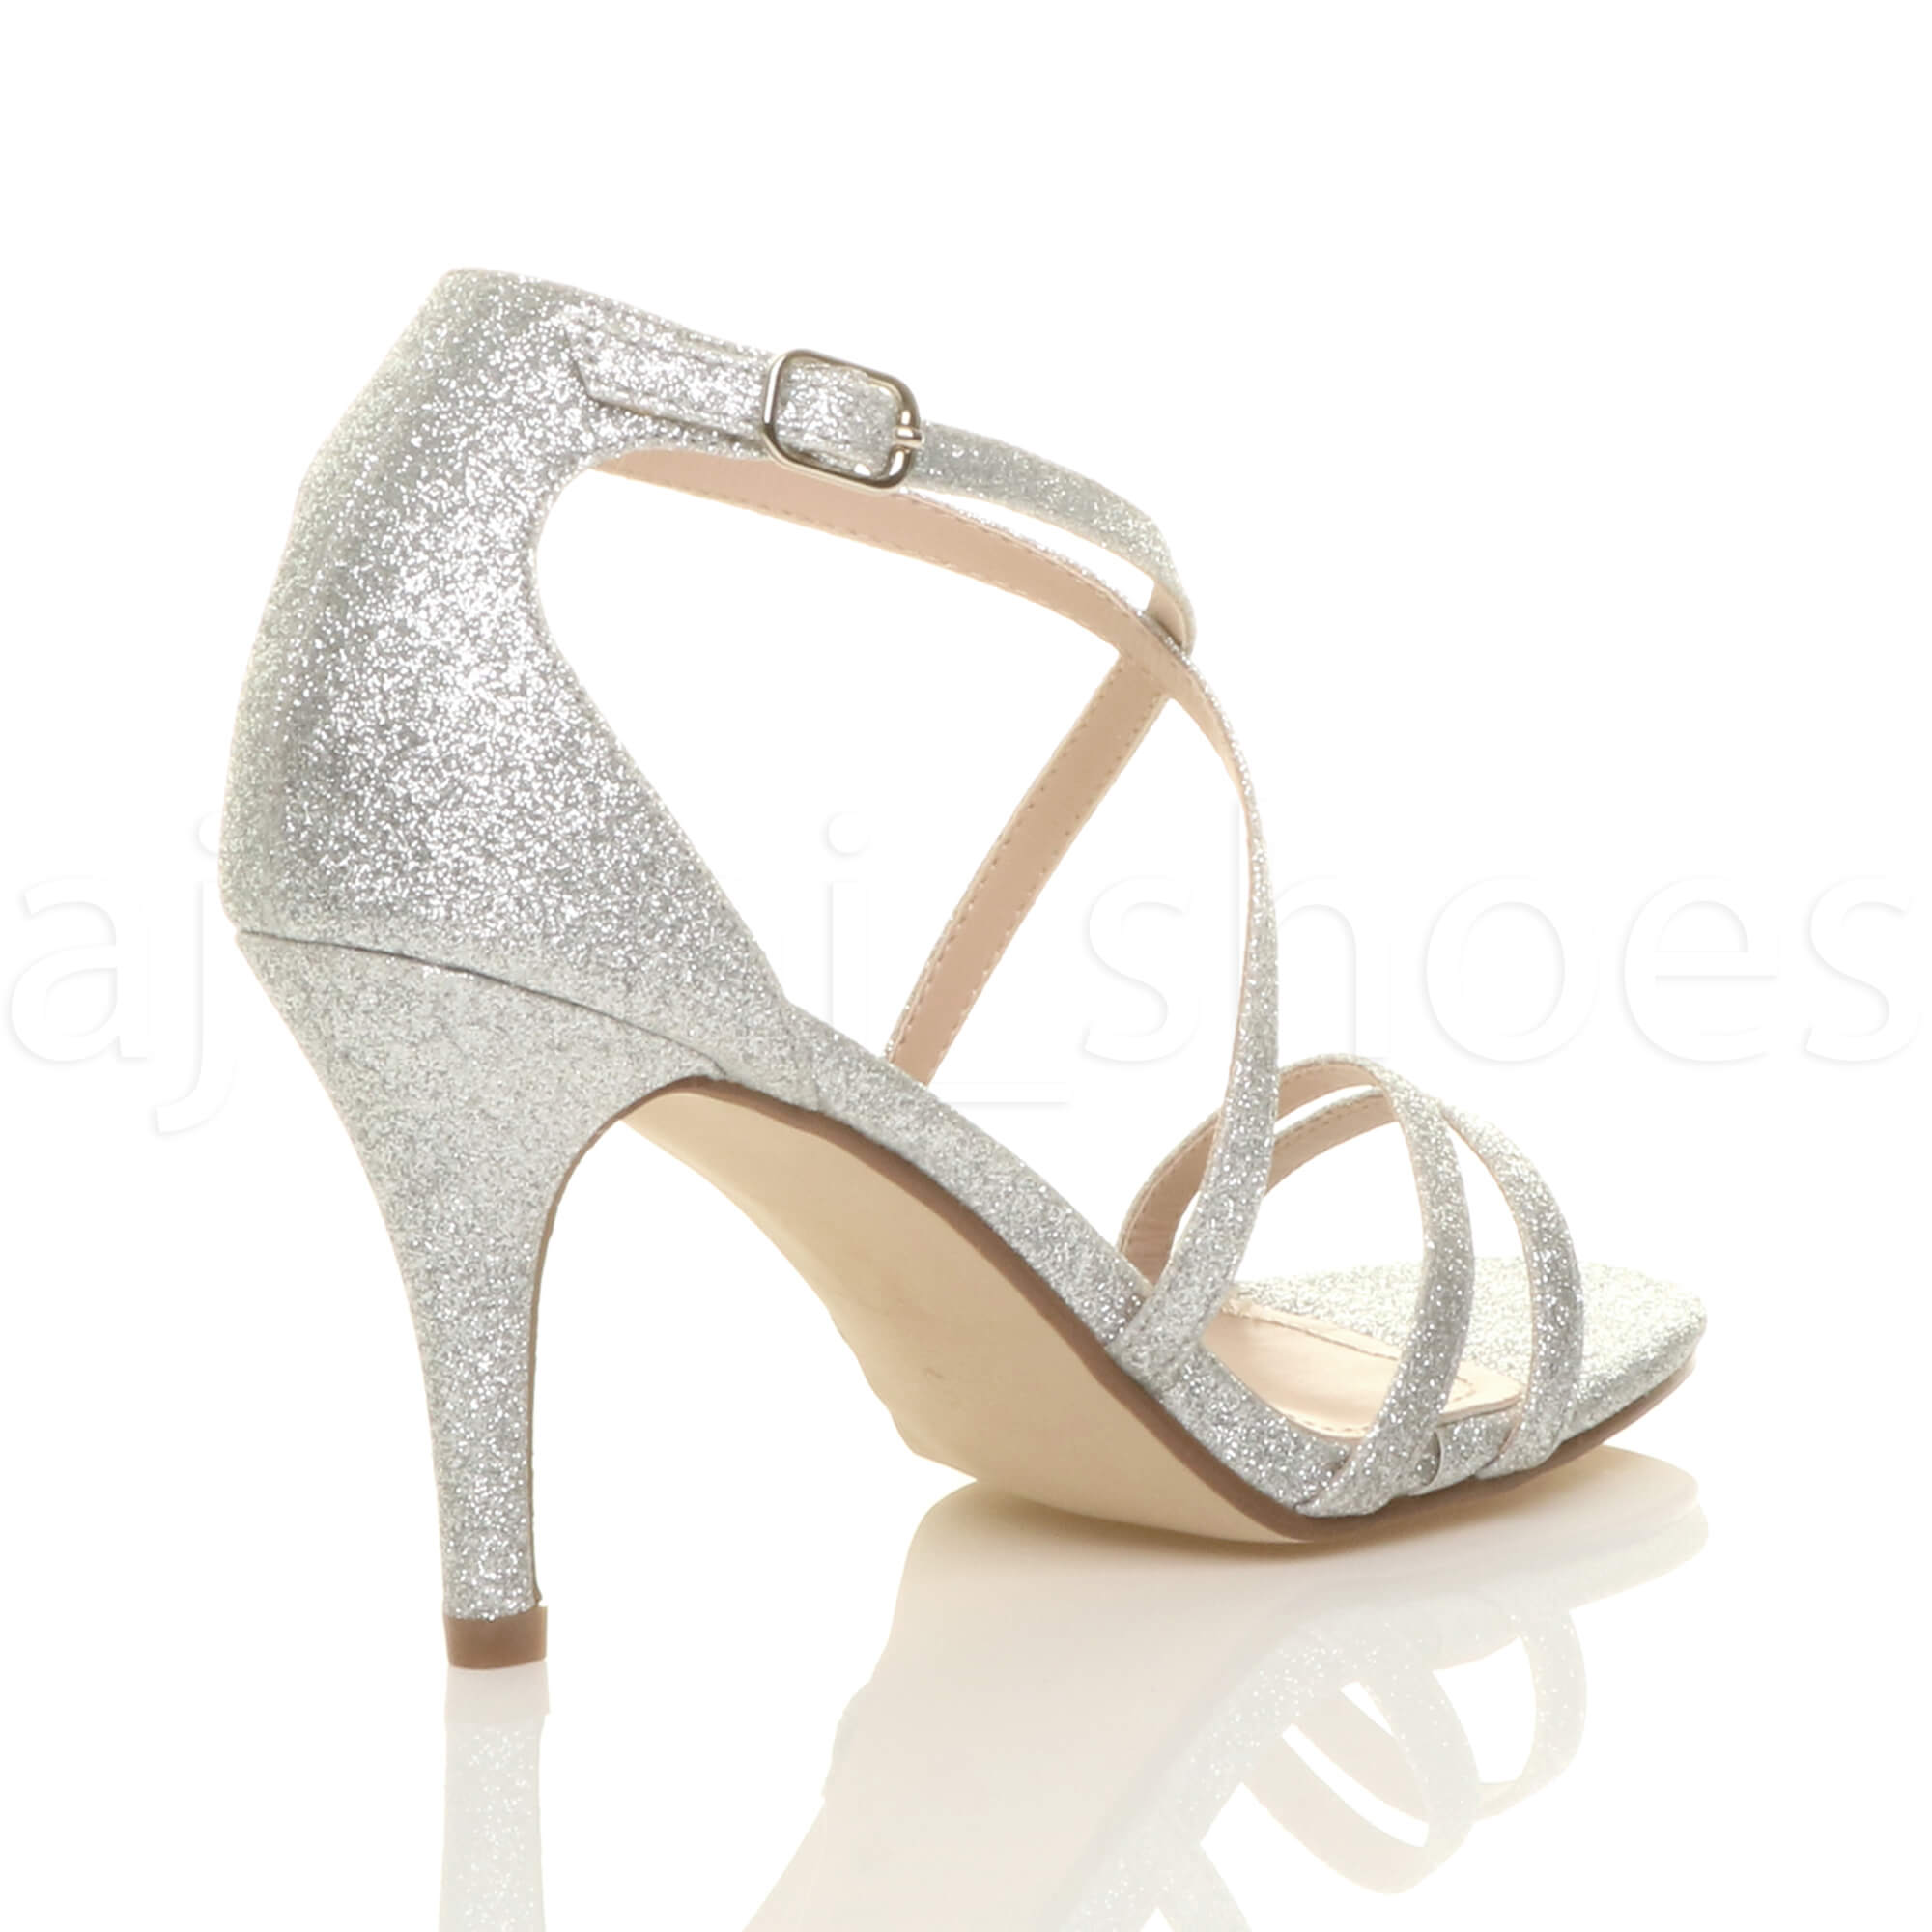 WOMENS-LADIES-MID-HIGH-HEEL-STRAPPY-CROSSOVER-WEDDING-PROM-SANDALS-SHOES-SIZE thumbnail 145